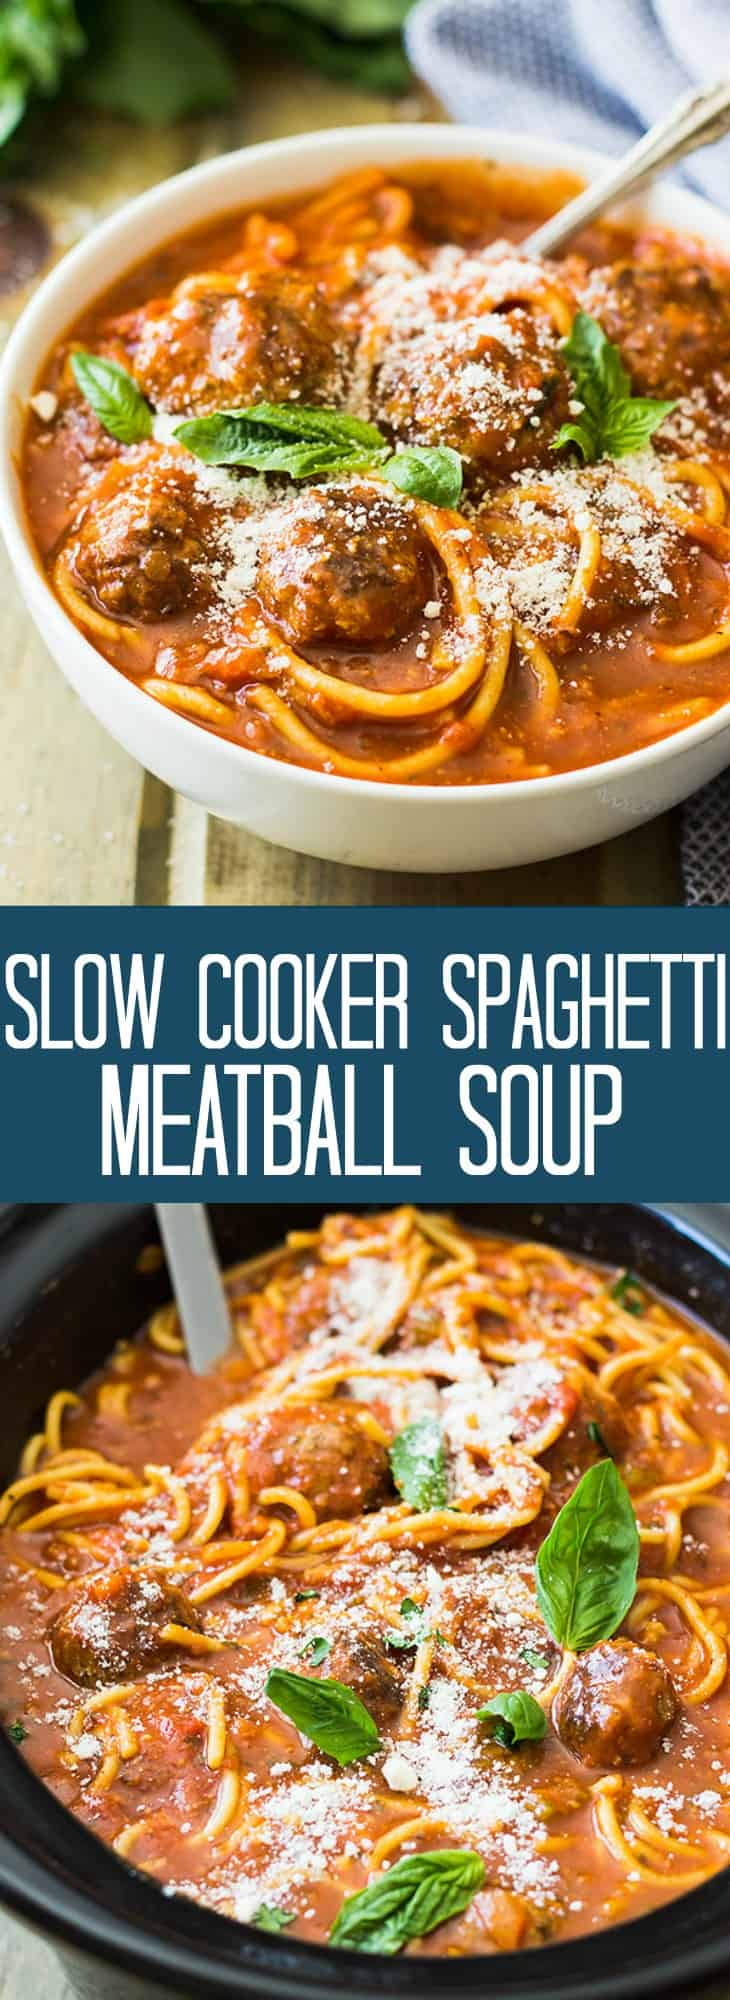 This Slow Cooker Spaghetti Meatball Soup is pure comfort food! A wonderful tomato soup filled with flavorful meatballs and tender spaghetti! | www.countrysidecravings.com